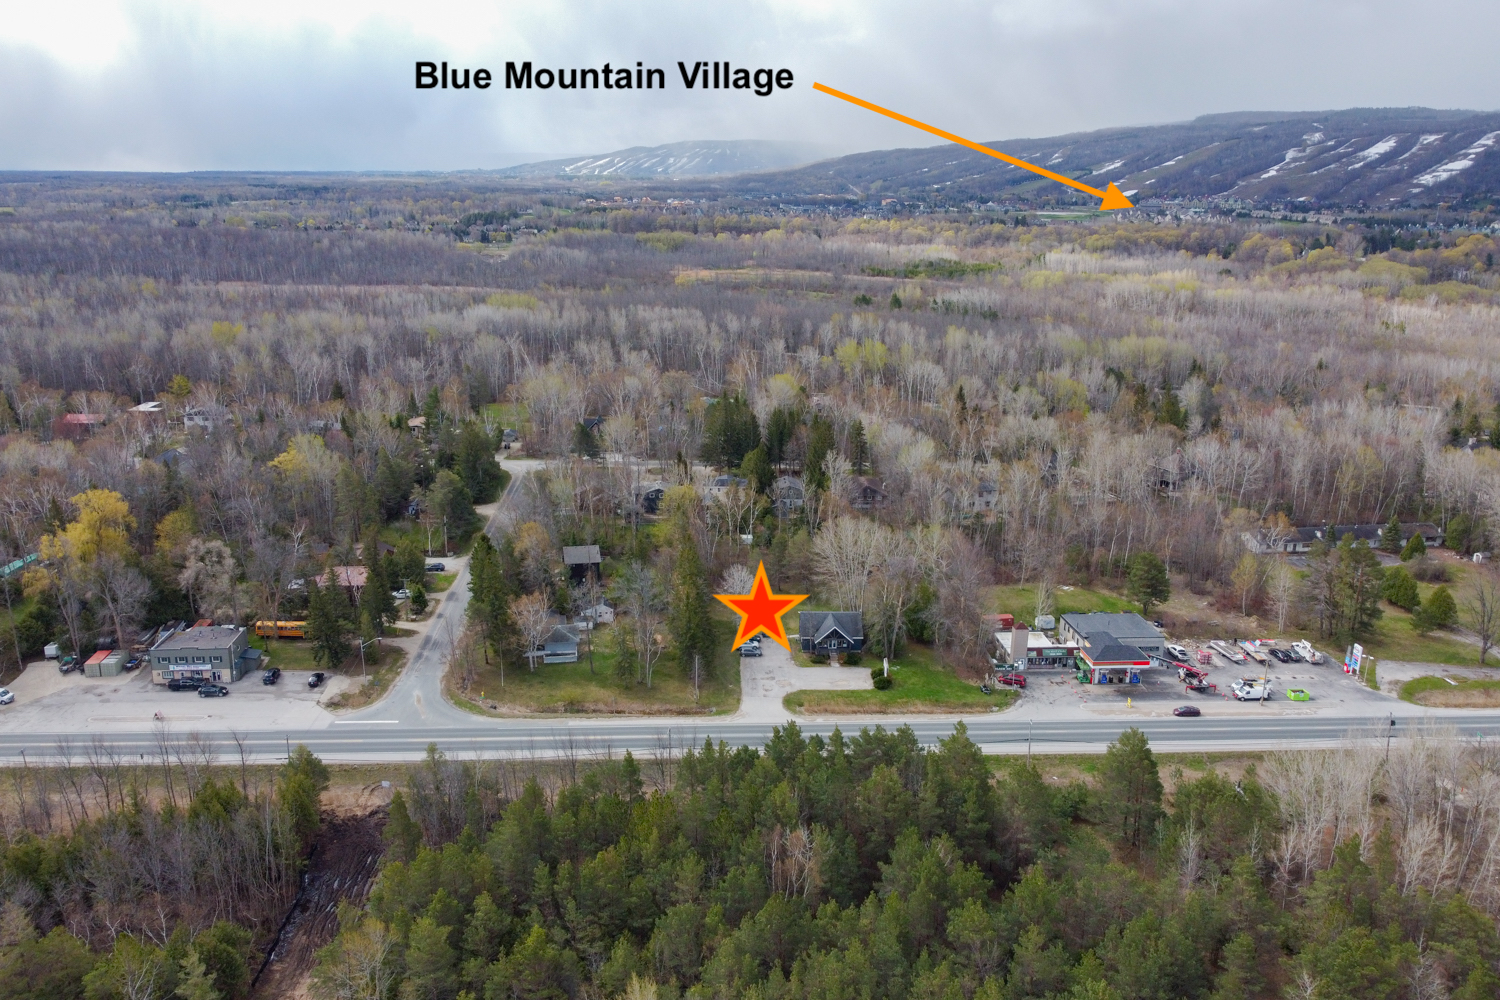 209820 26 Highway, Town Of Blue Mountains<span class='property-location-view'></span>